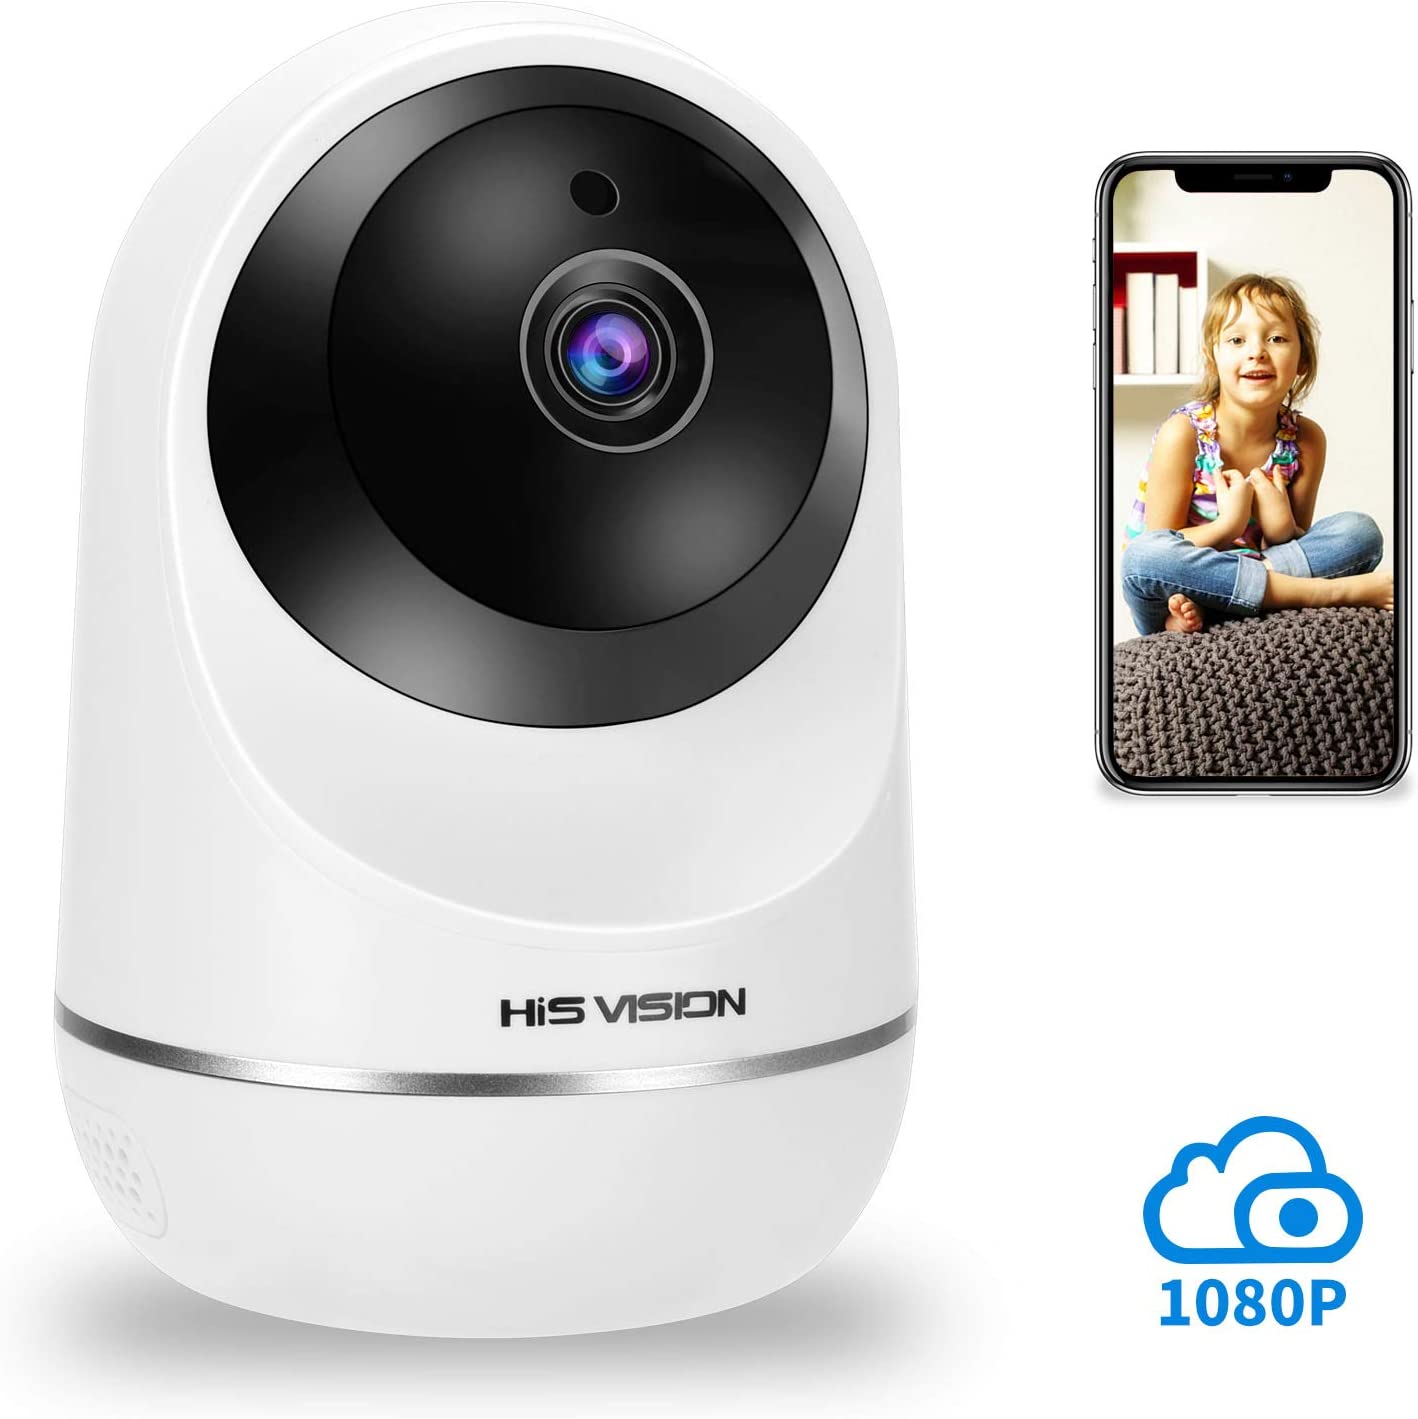 HISVISION Wireless 1080P IP Camera, WiFi Home Security Surveillance HD Camera Activity Detection Alert,Motion Tracking Baby Pet Monitor Nanny Cam, Night Vision Two-Way Audio with SD Card Slot Cloud